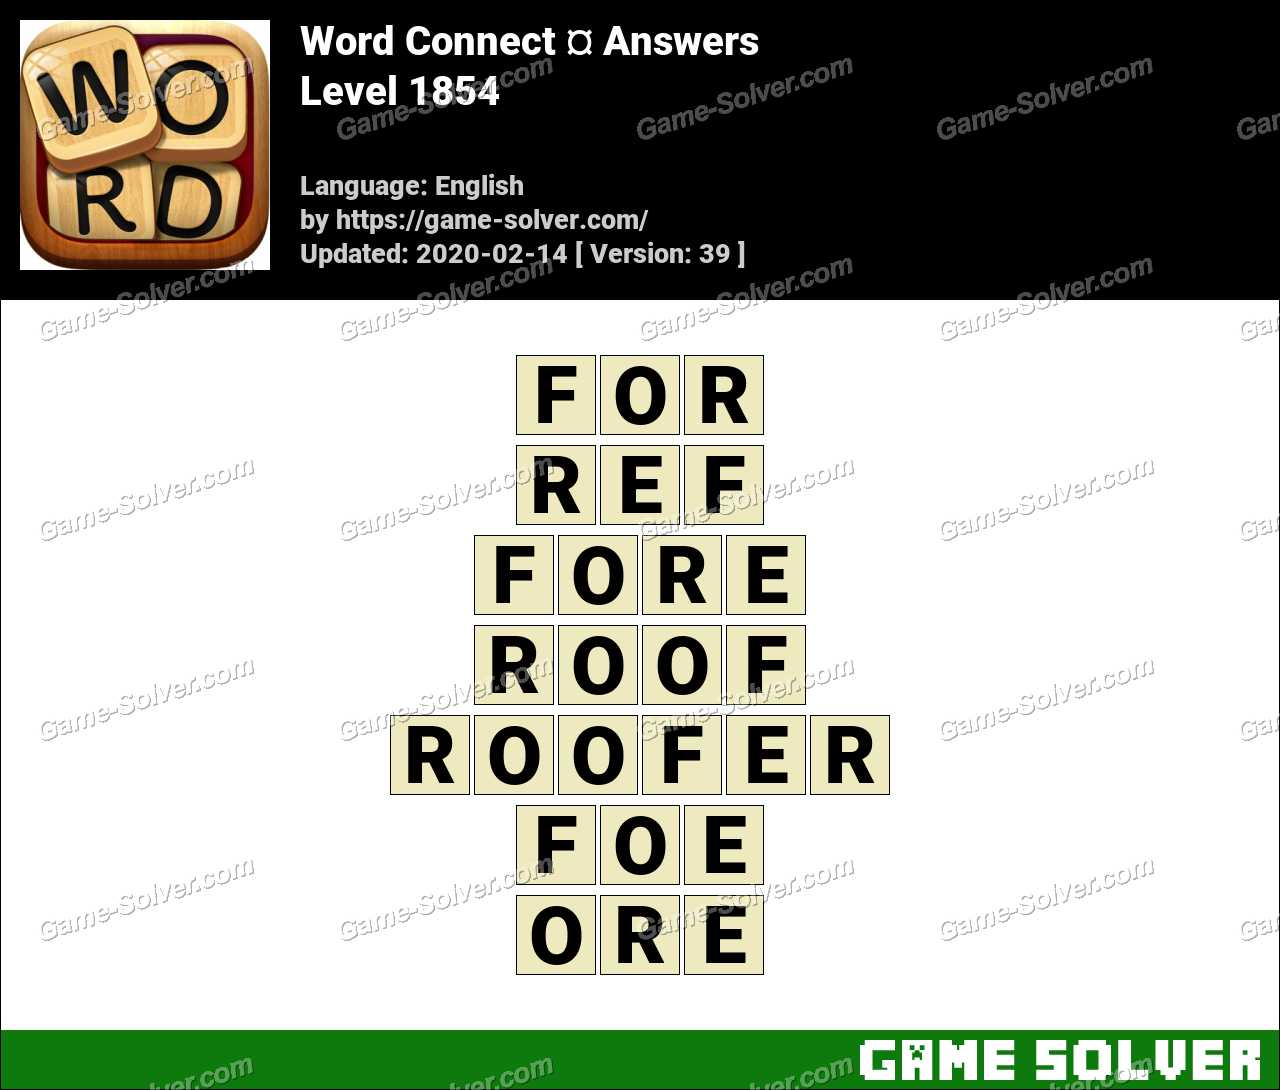 Word Connect Level 1854 Answers